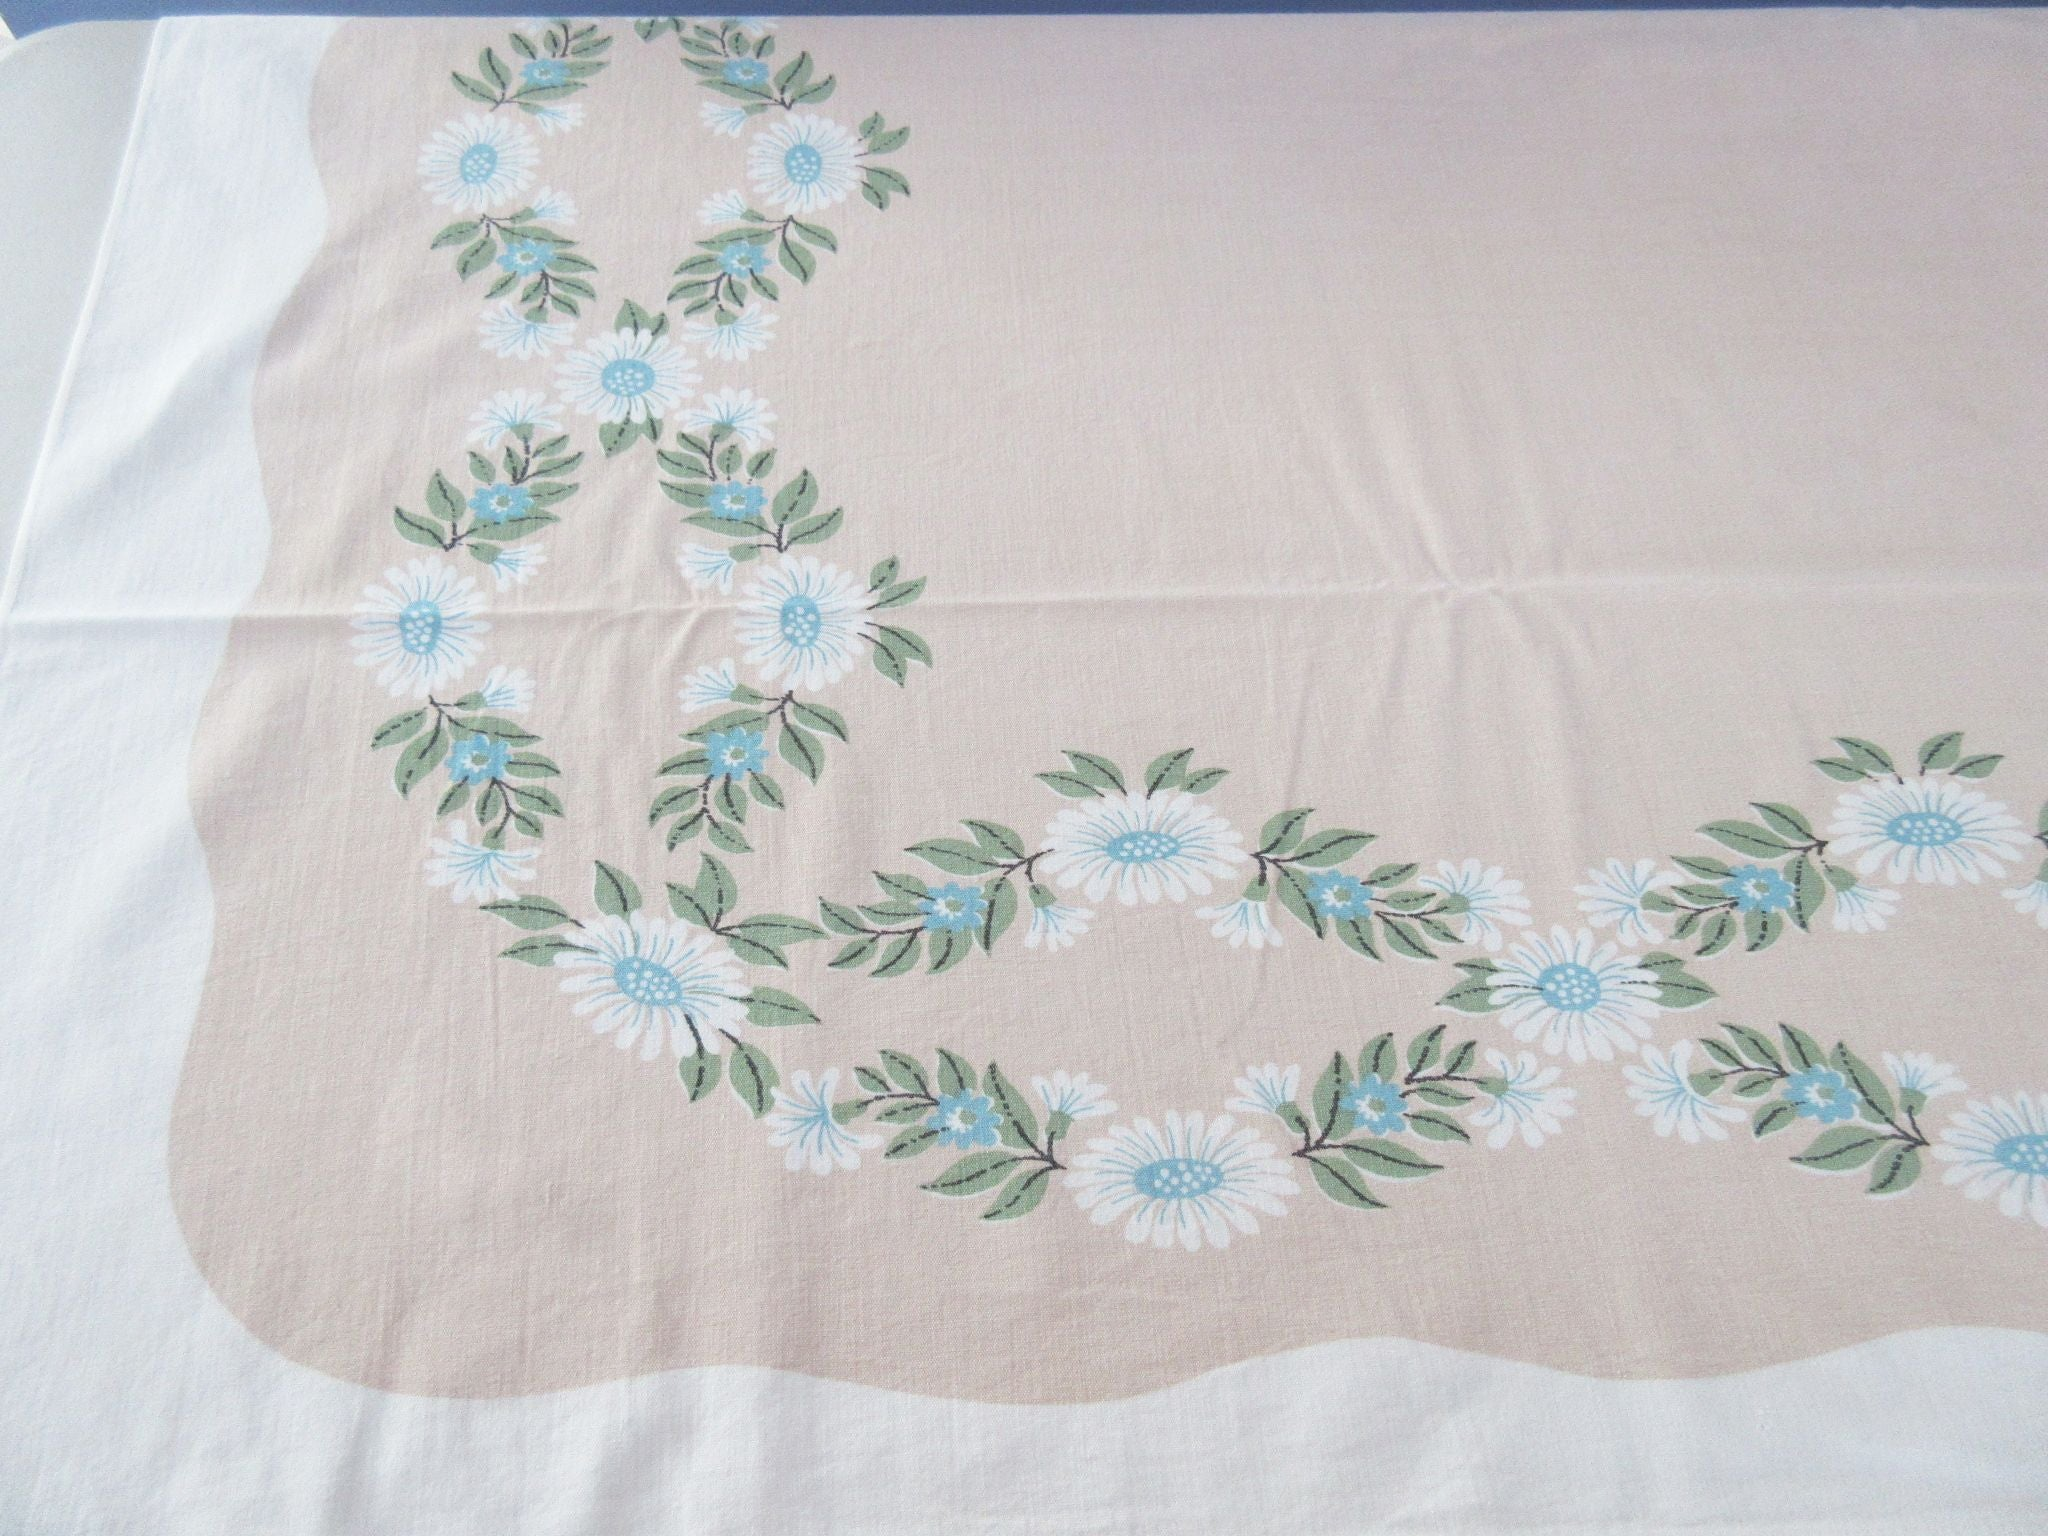 Daisy Chains on Tan Ivan Bartlett Floral Vintage Printed Tablecloth (53 X 43)